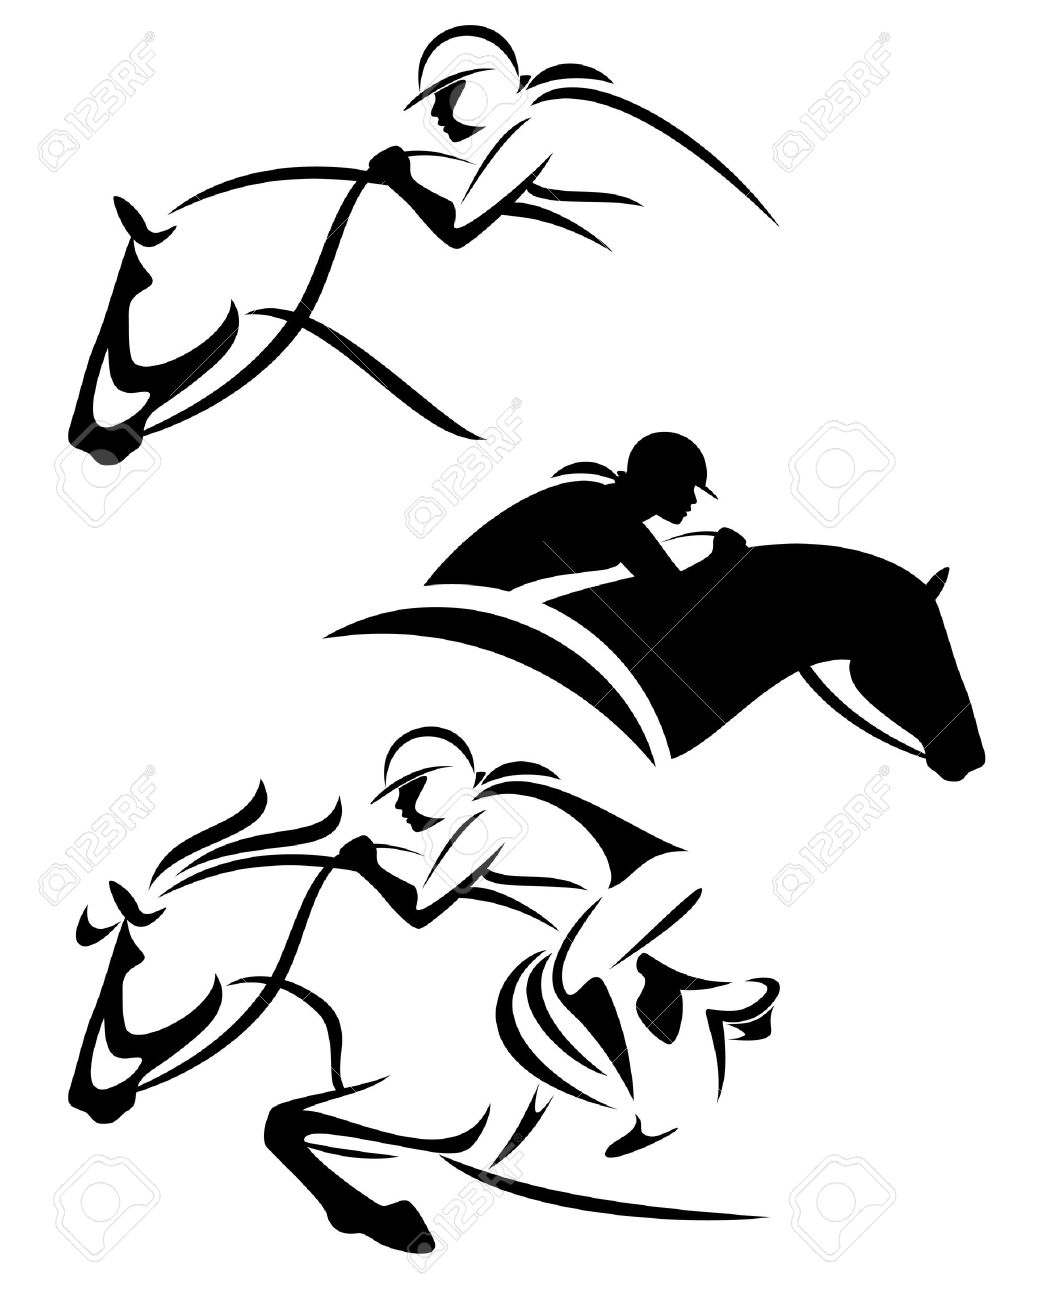 Female Rider Jumping Horse Outline And Silhouette Black And Royalty Free Cliparts Vectors And Stock Illustration Image 47112477